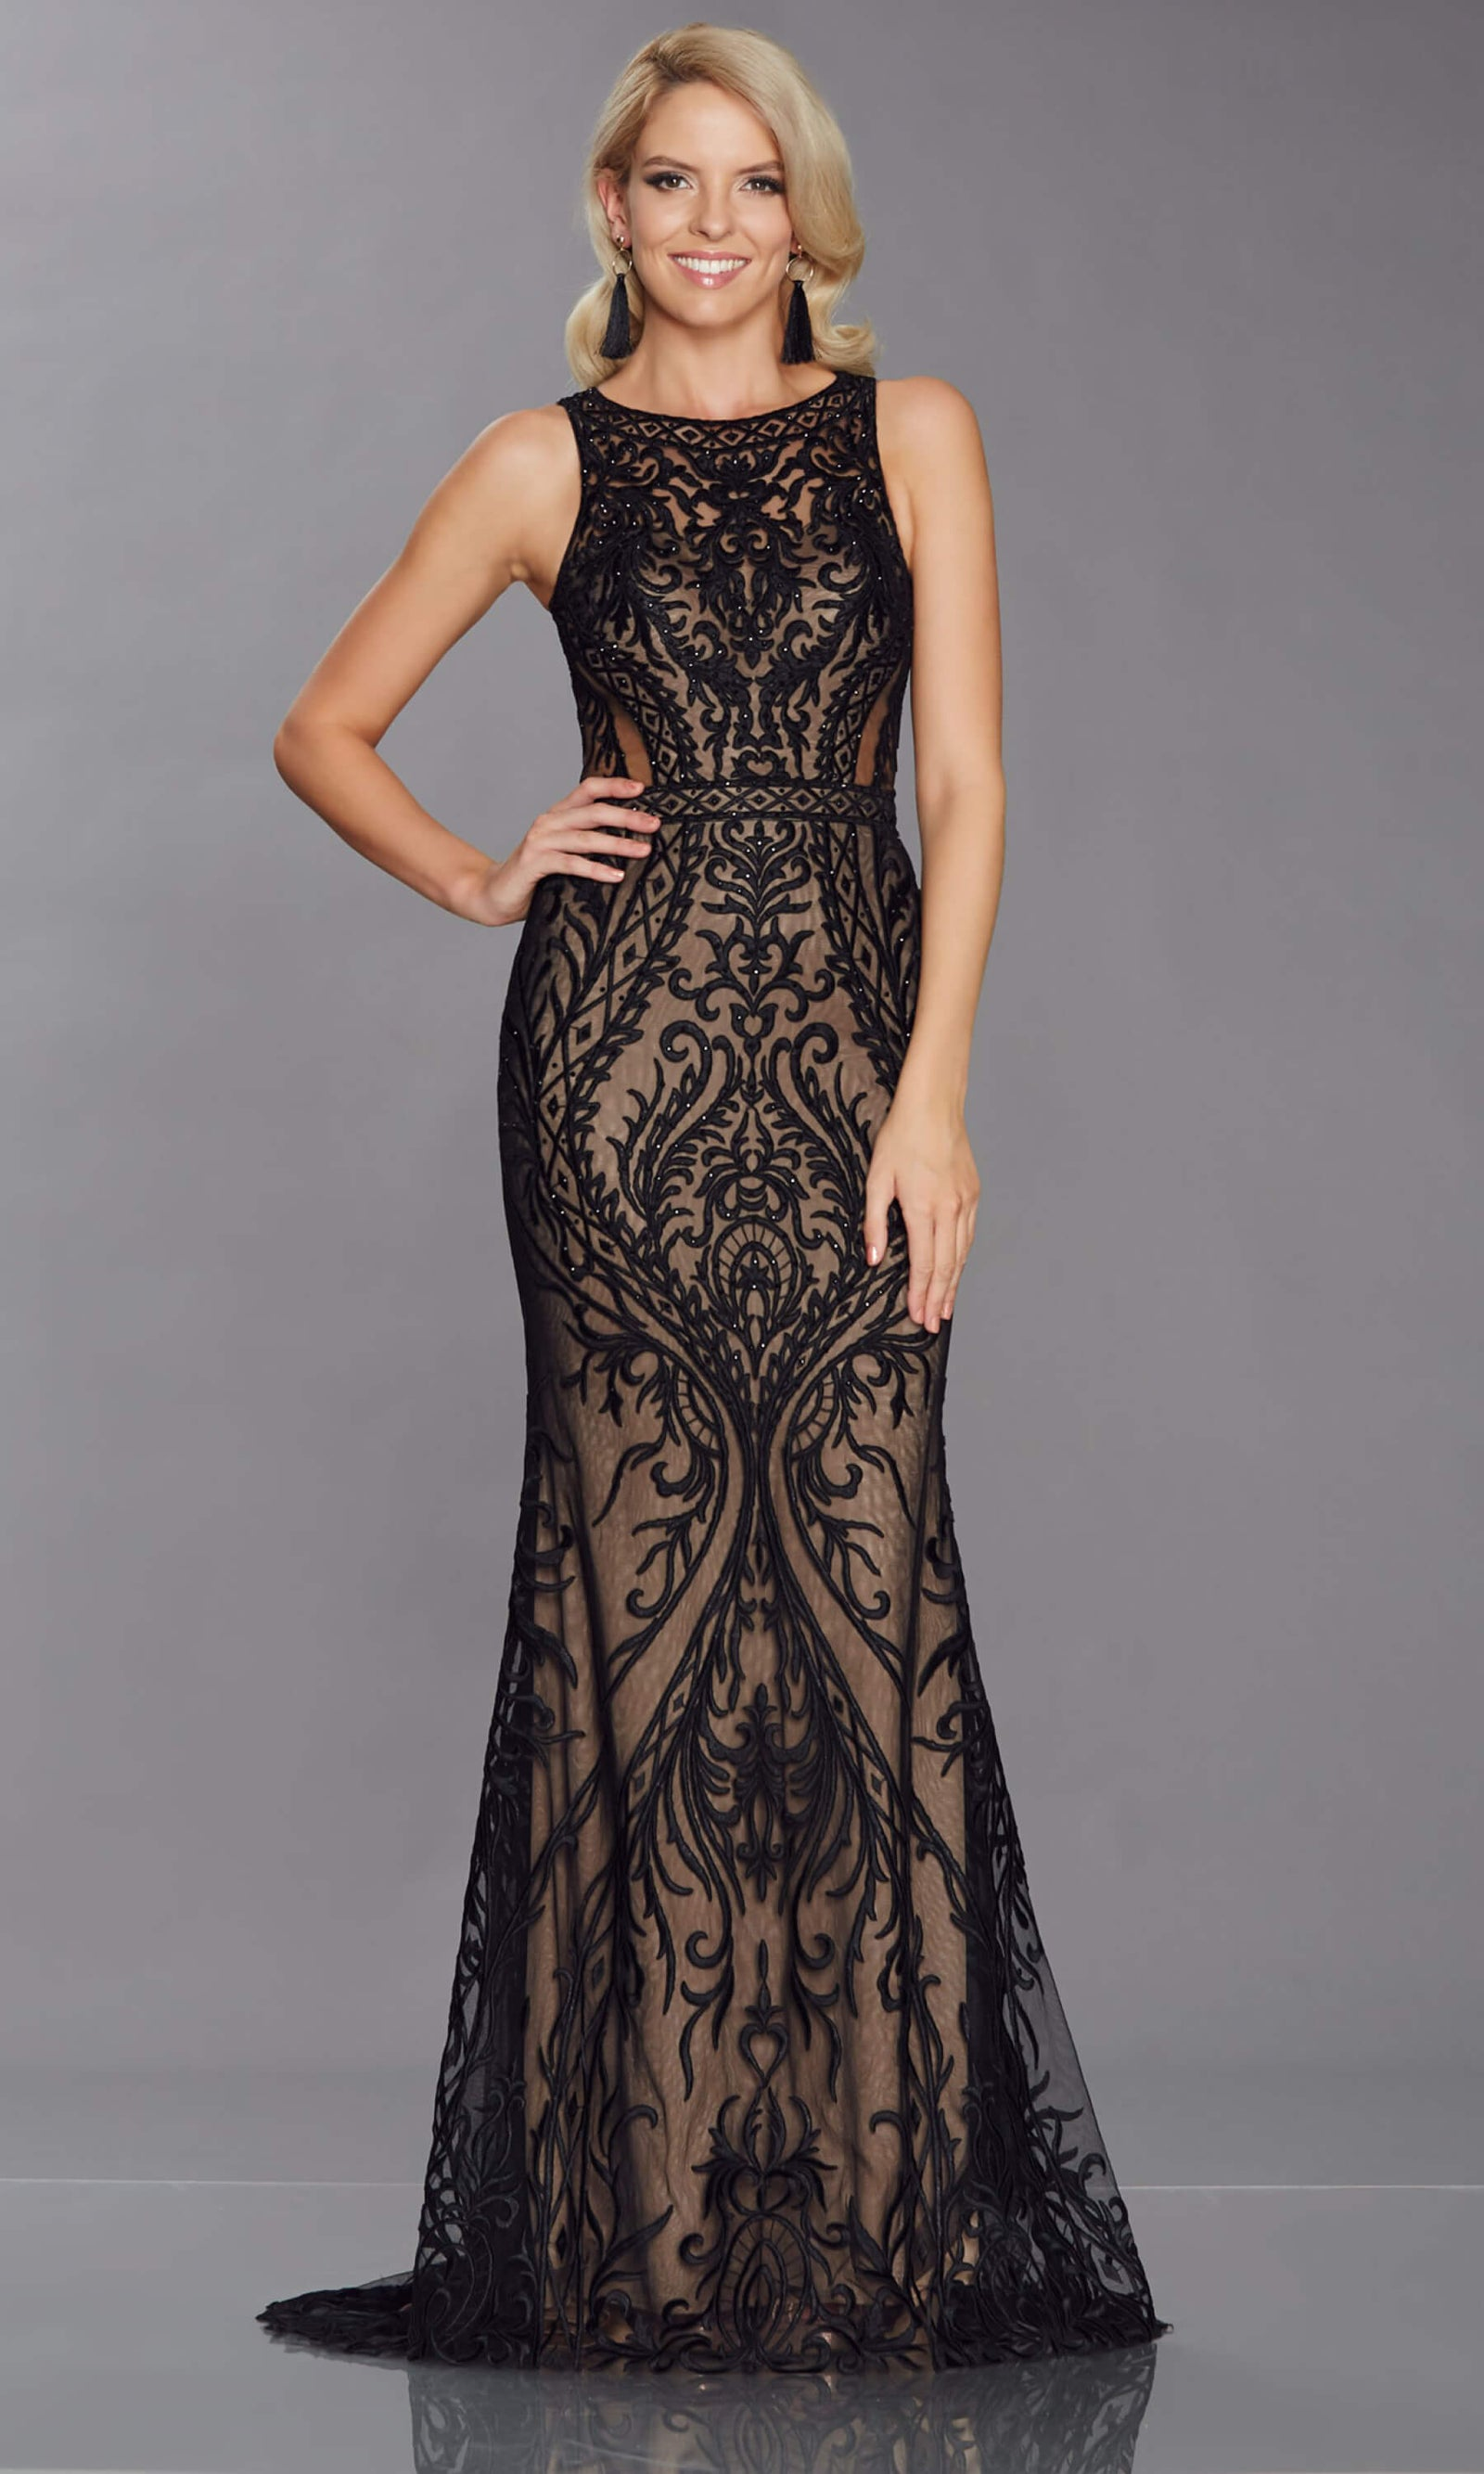 Nyla Black Nude Tiffanys Highneck Evening Prom Dress - Fab Frocks